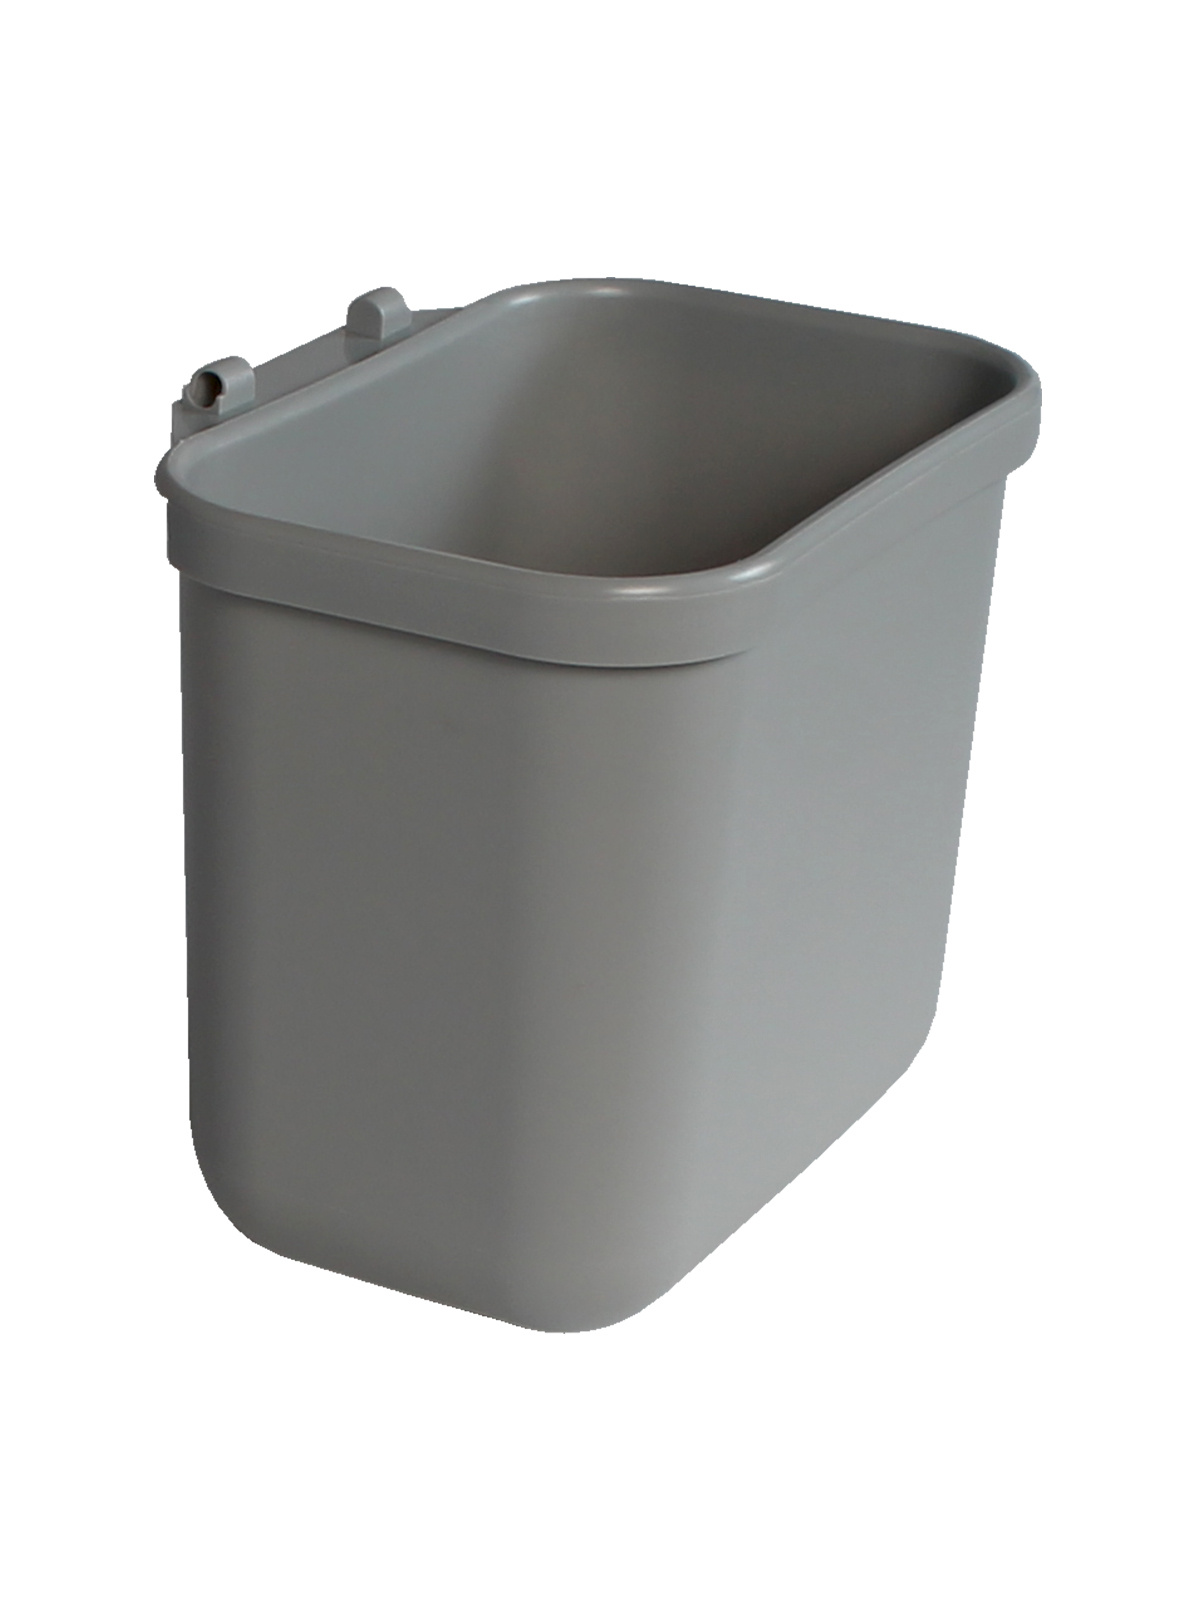 HANGING WASTE BASKET - Single - Body - Executive Grey